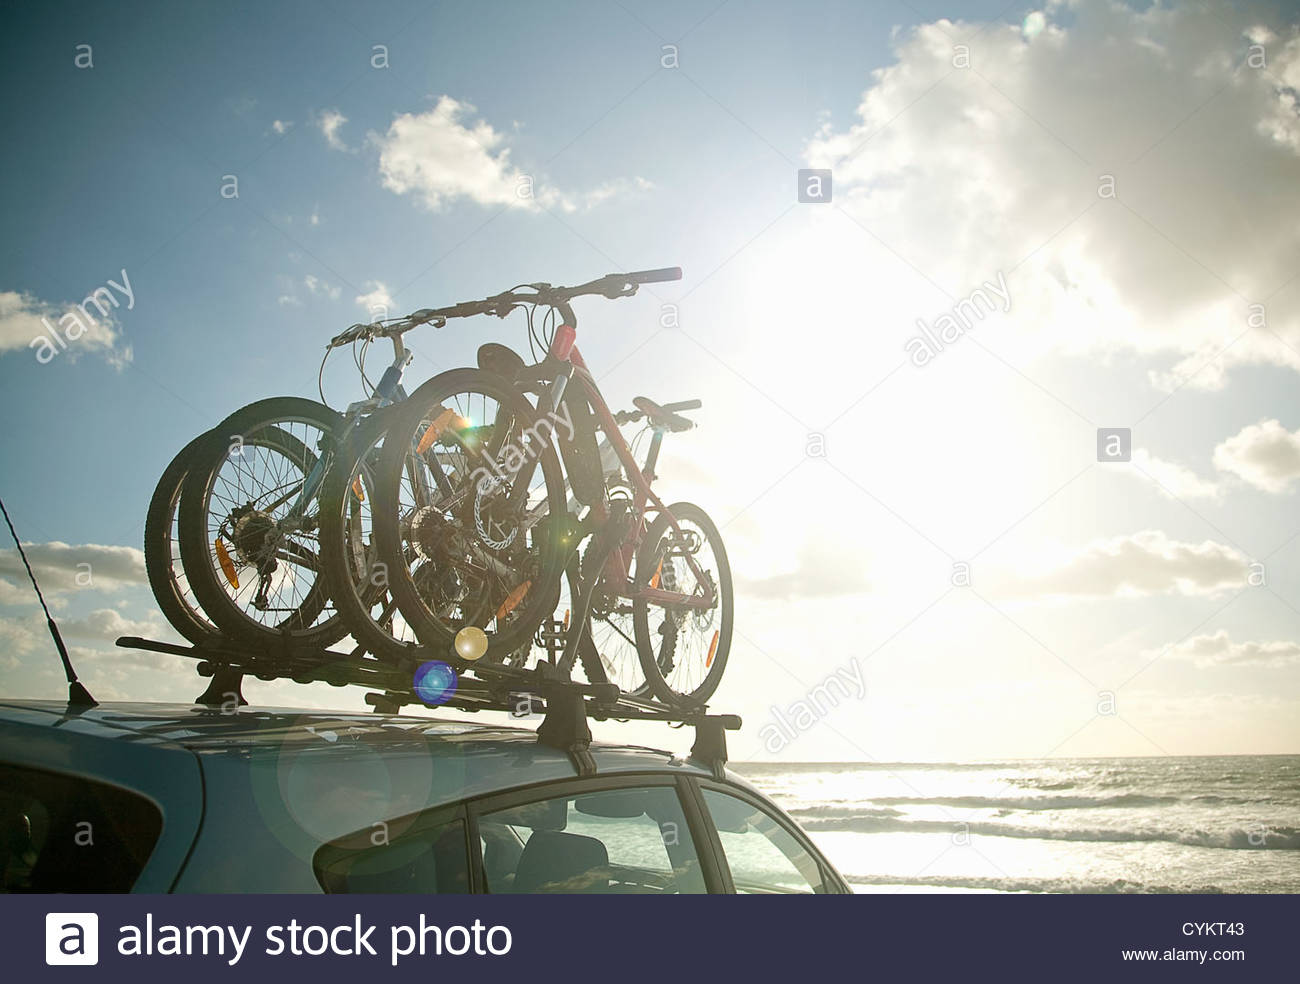 Bicycles attached to roof of car - Stock Image